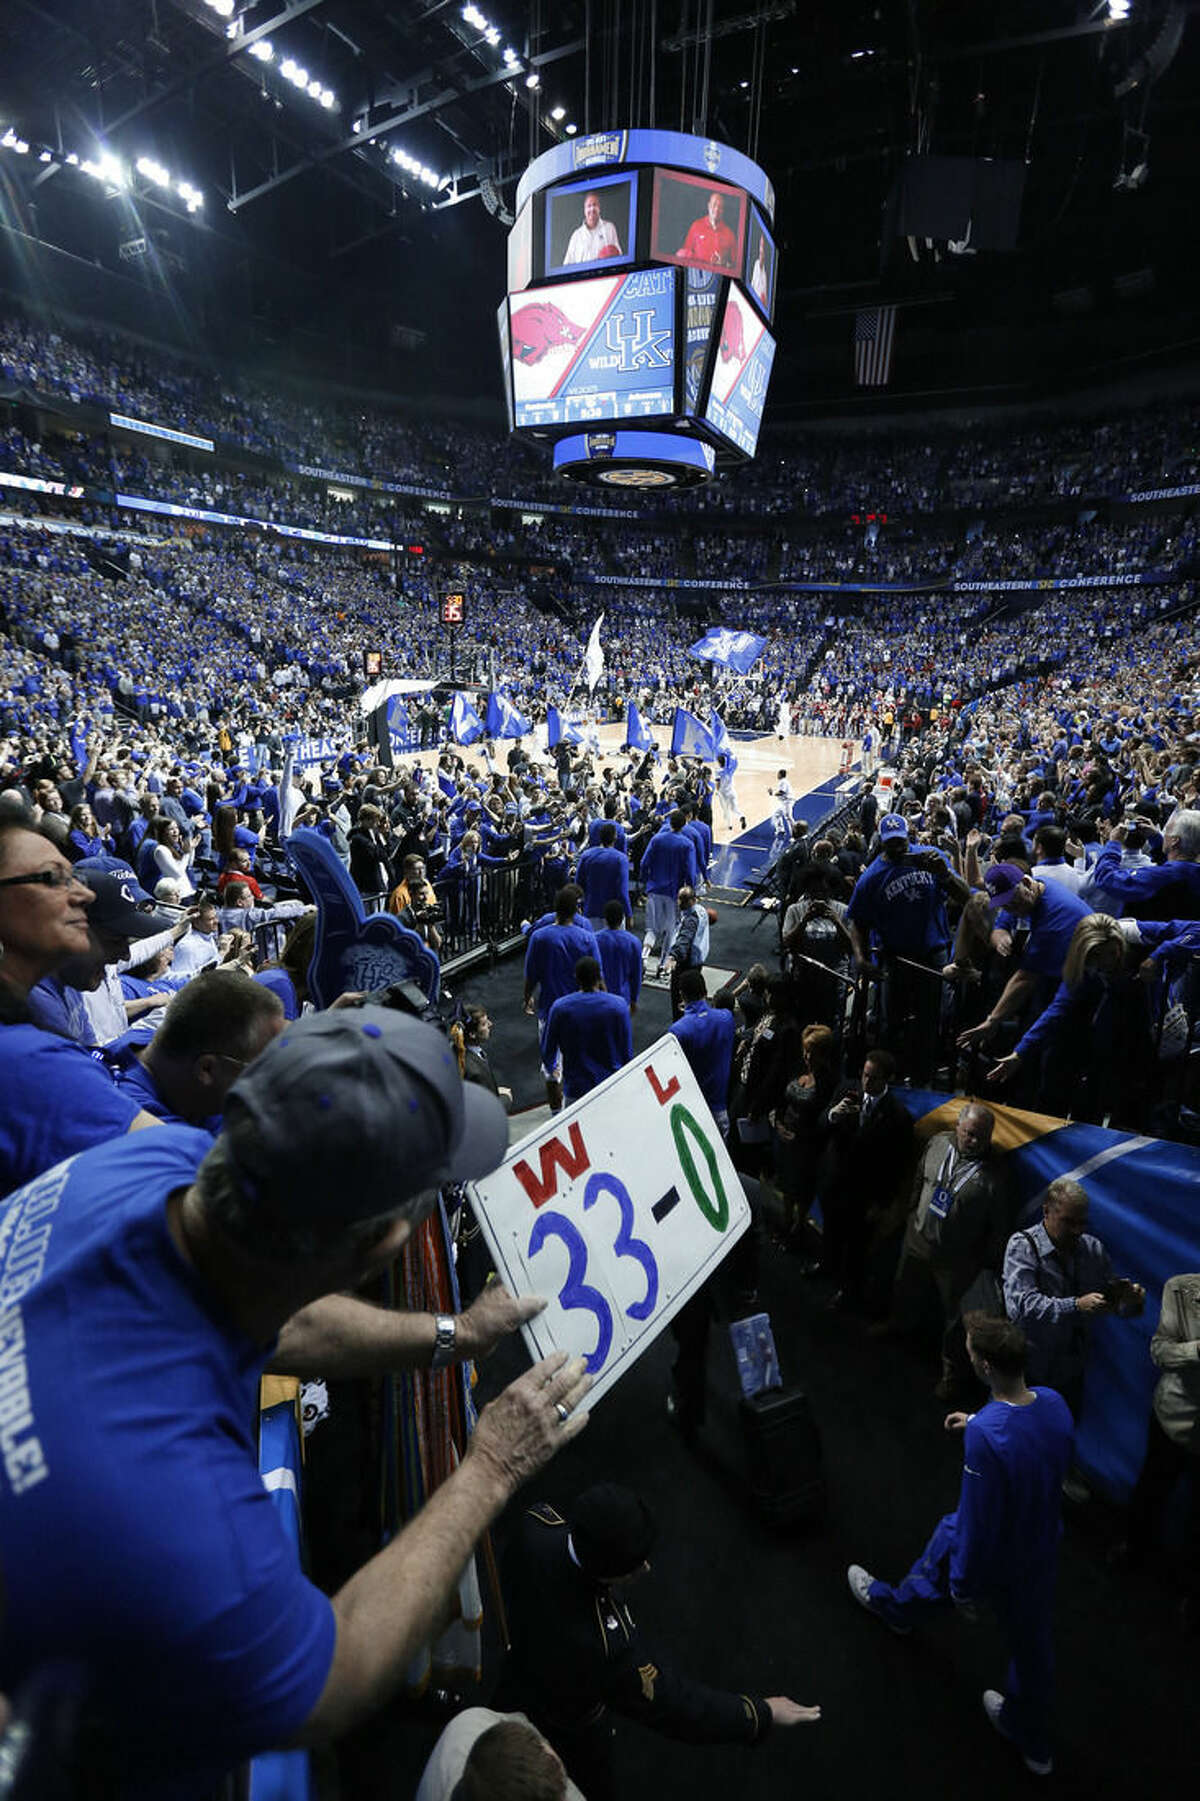 FILE - In this Sunday, march 15, 2015, file photo, a Kentucky fan cheers as the team steps on to the court for the first half of the NCAA college basketball against Akransas in the championship of the the Southeastern Conference tournament in Nashville, Tenn. In 1939, the NCAA national title was decided by an eight-team competition. In 2015, 68 teams will play in 14 venues across the country, every game will be on TV, and the championship game will be played in an NFL stadium while millions of people watch across the country and around the world. (AP Photo/Steve Helber, File)